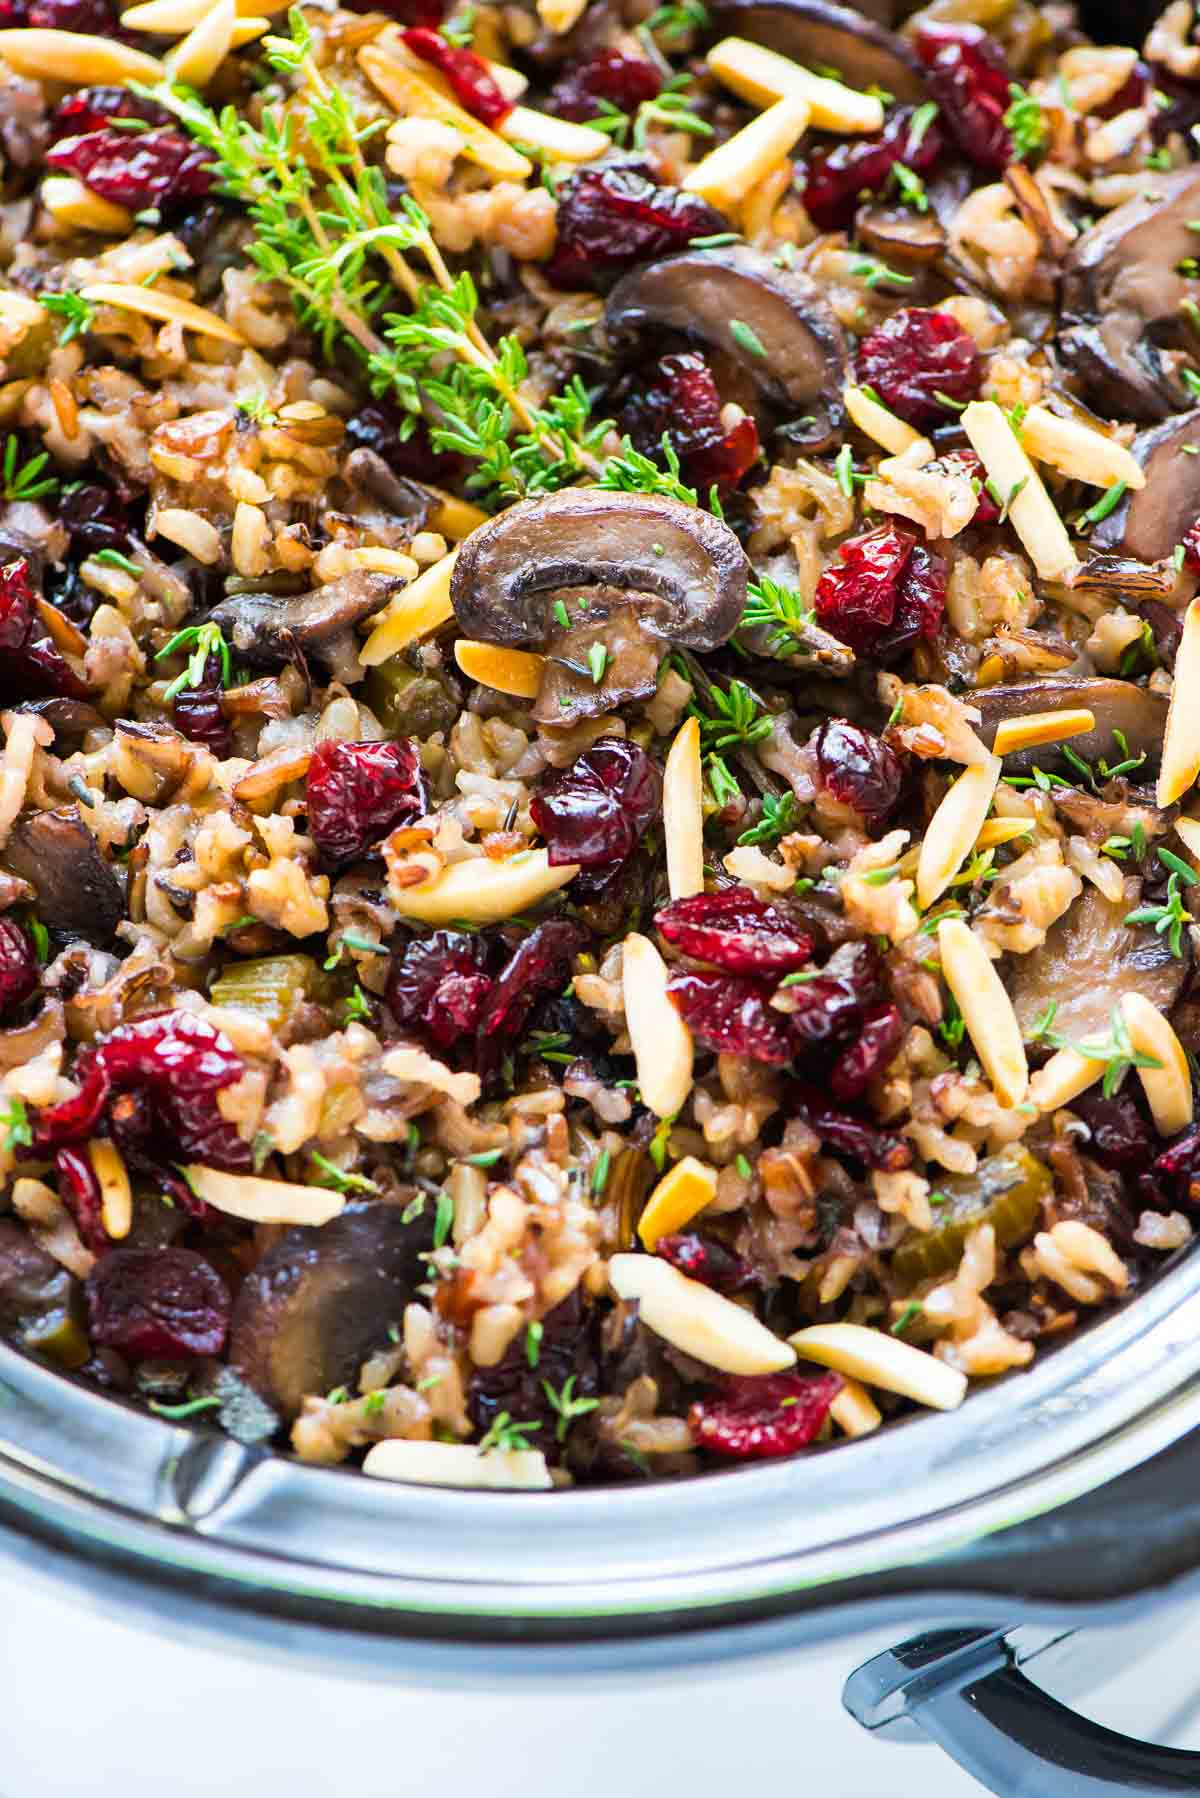 Thanksgiving Wild Rice  Crock Pot Stuffing with Wild Rice Cranberries and Almonds